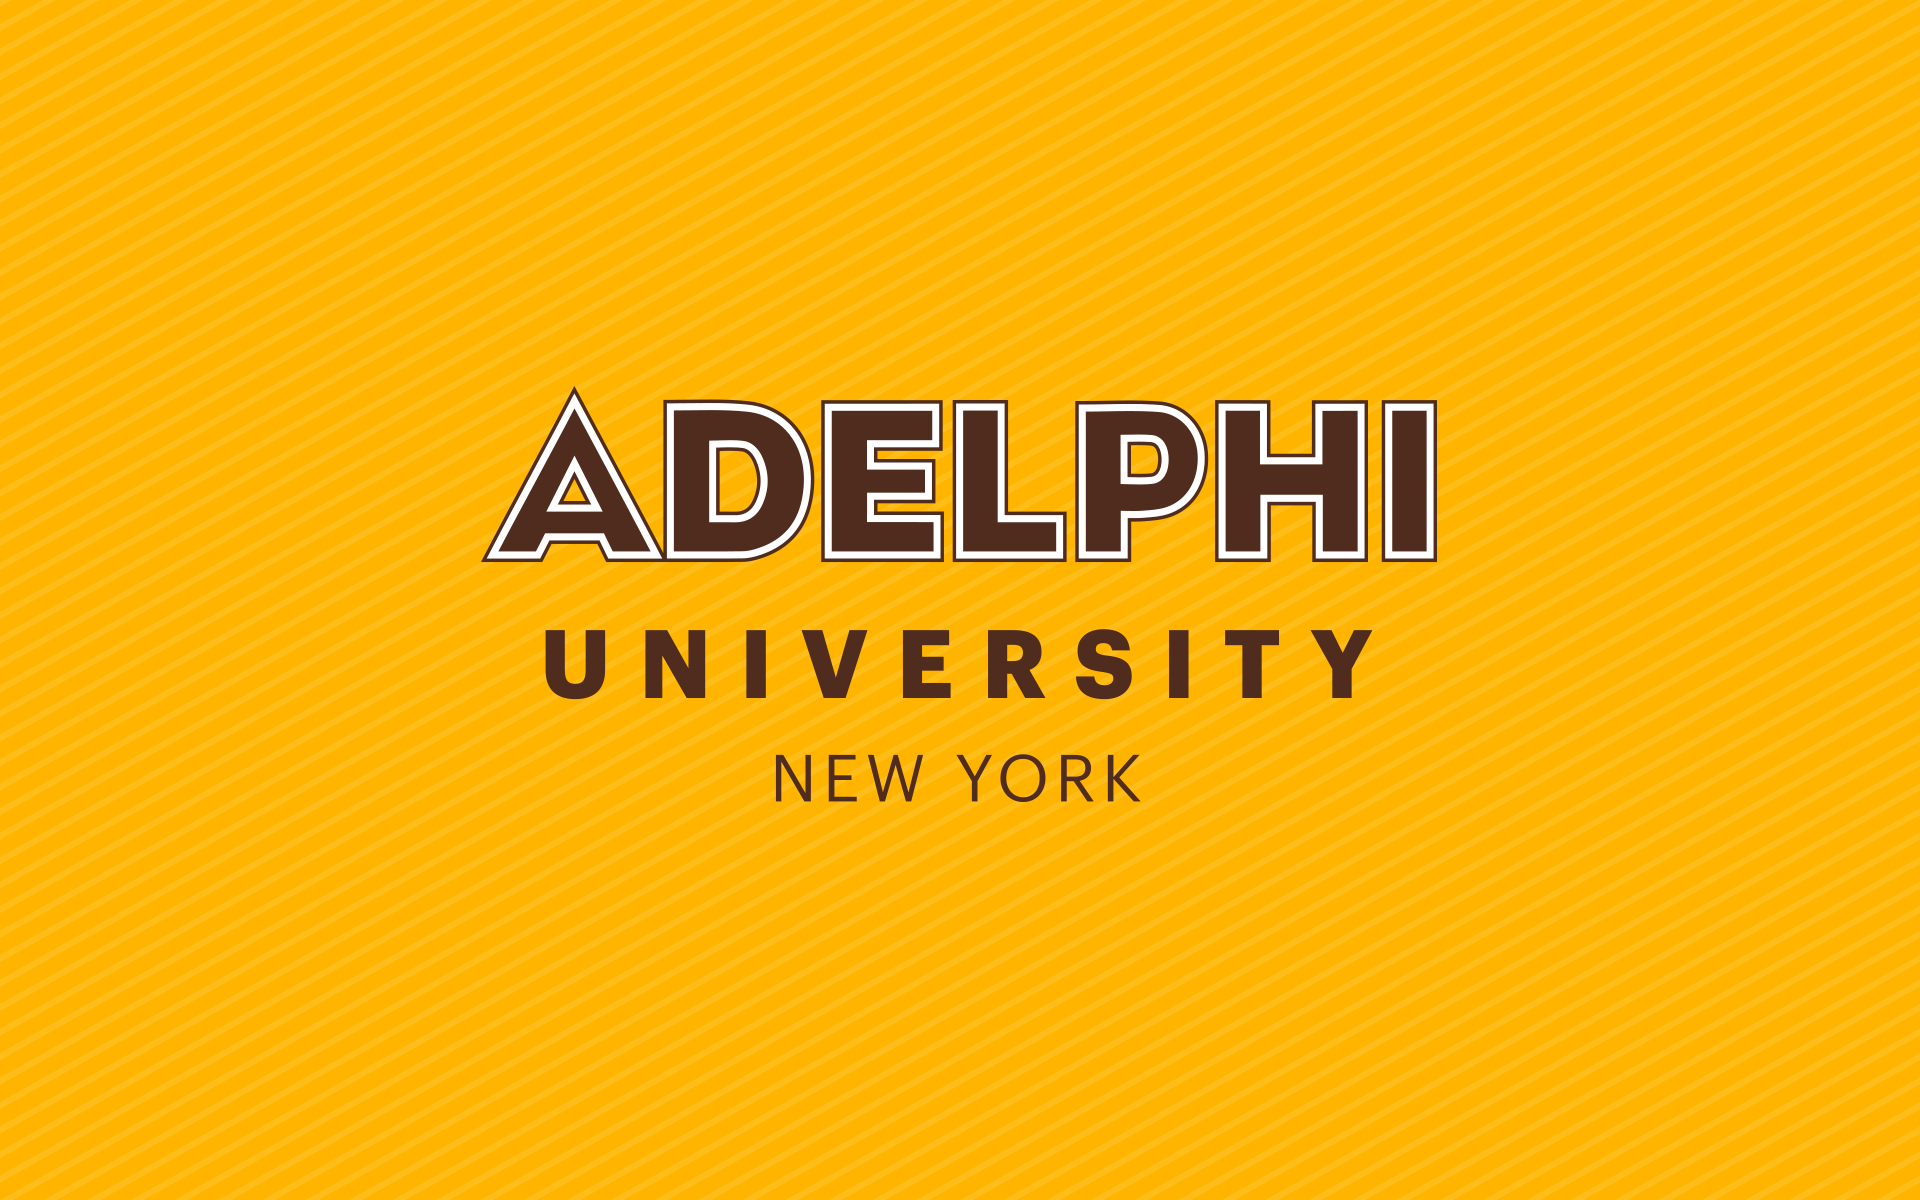 Desktop 16x10 - Adelphi Gold Wallpaper